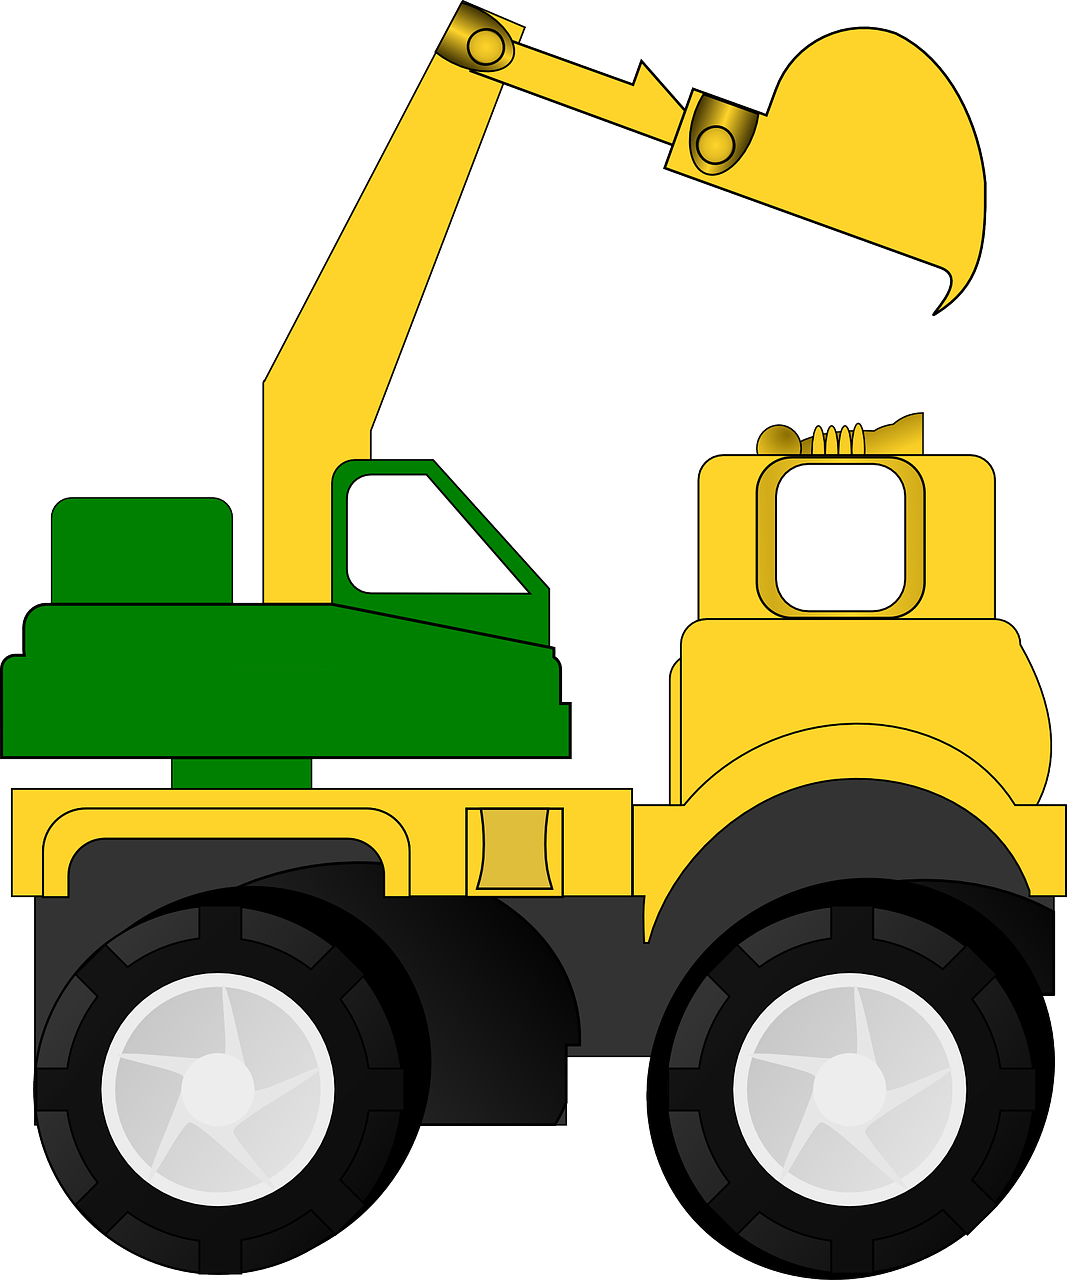 Backhoe Excavator Dredger Free Vector Graphic On Pixabay